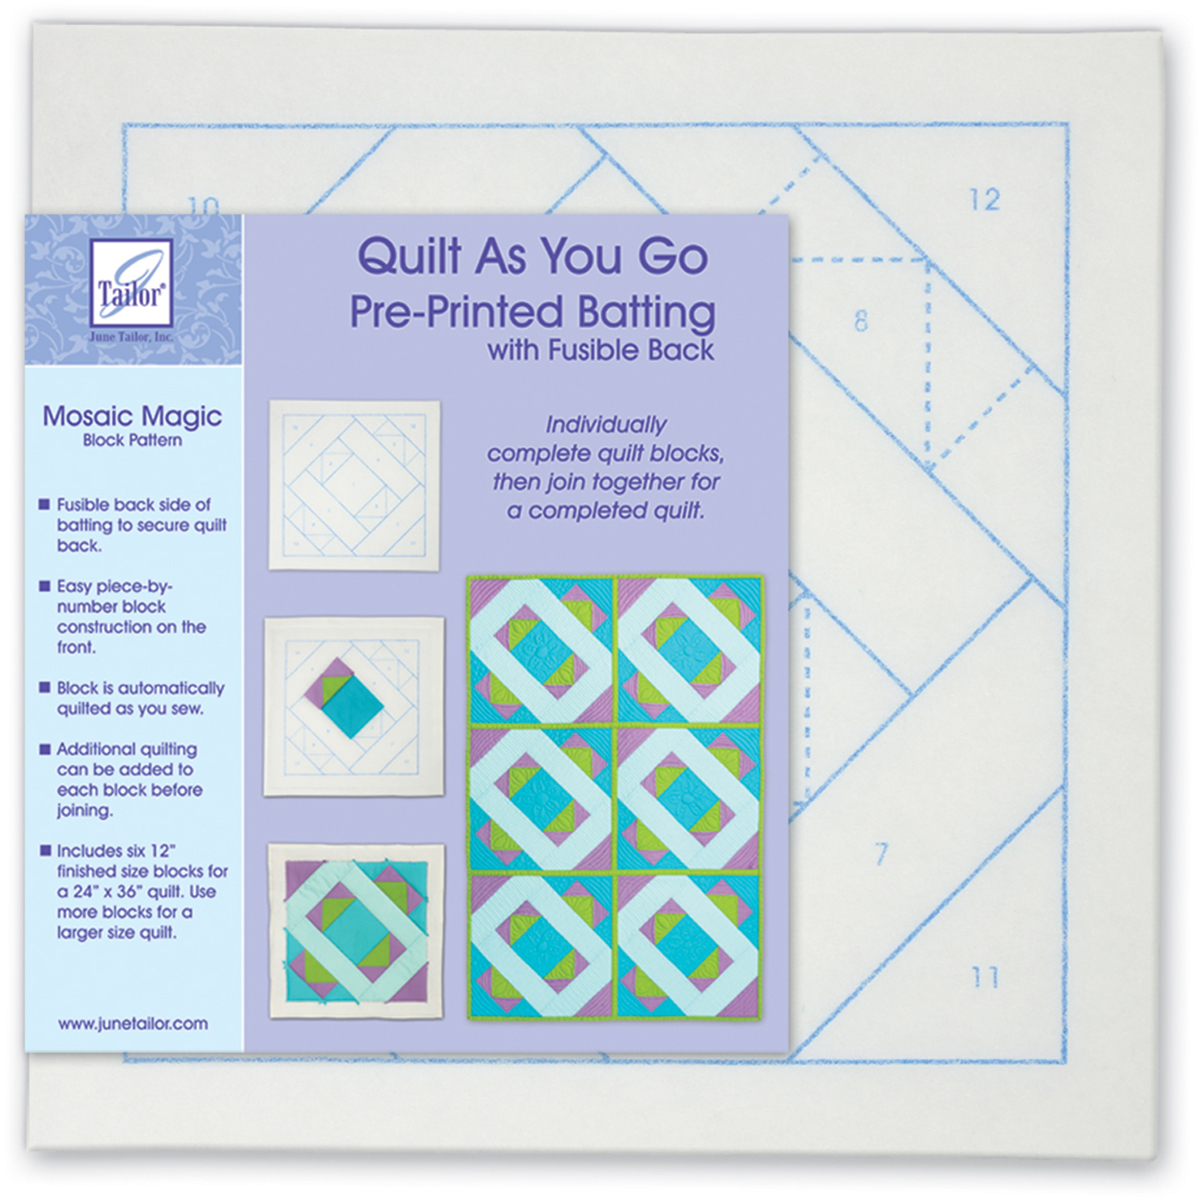 June Tailor Quilt As You Go Printed Quilt Blocks On Batting-Mosaic Magic